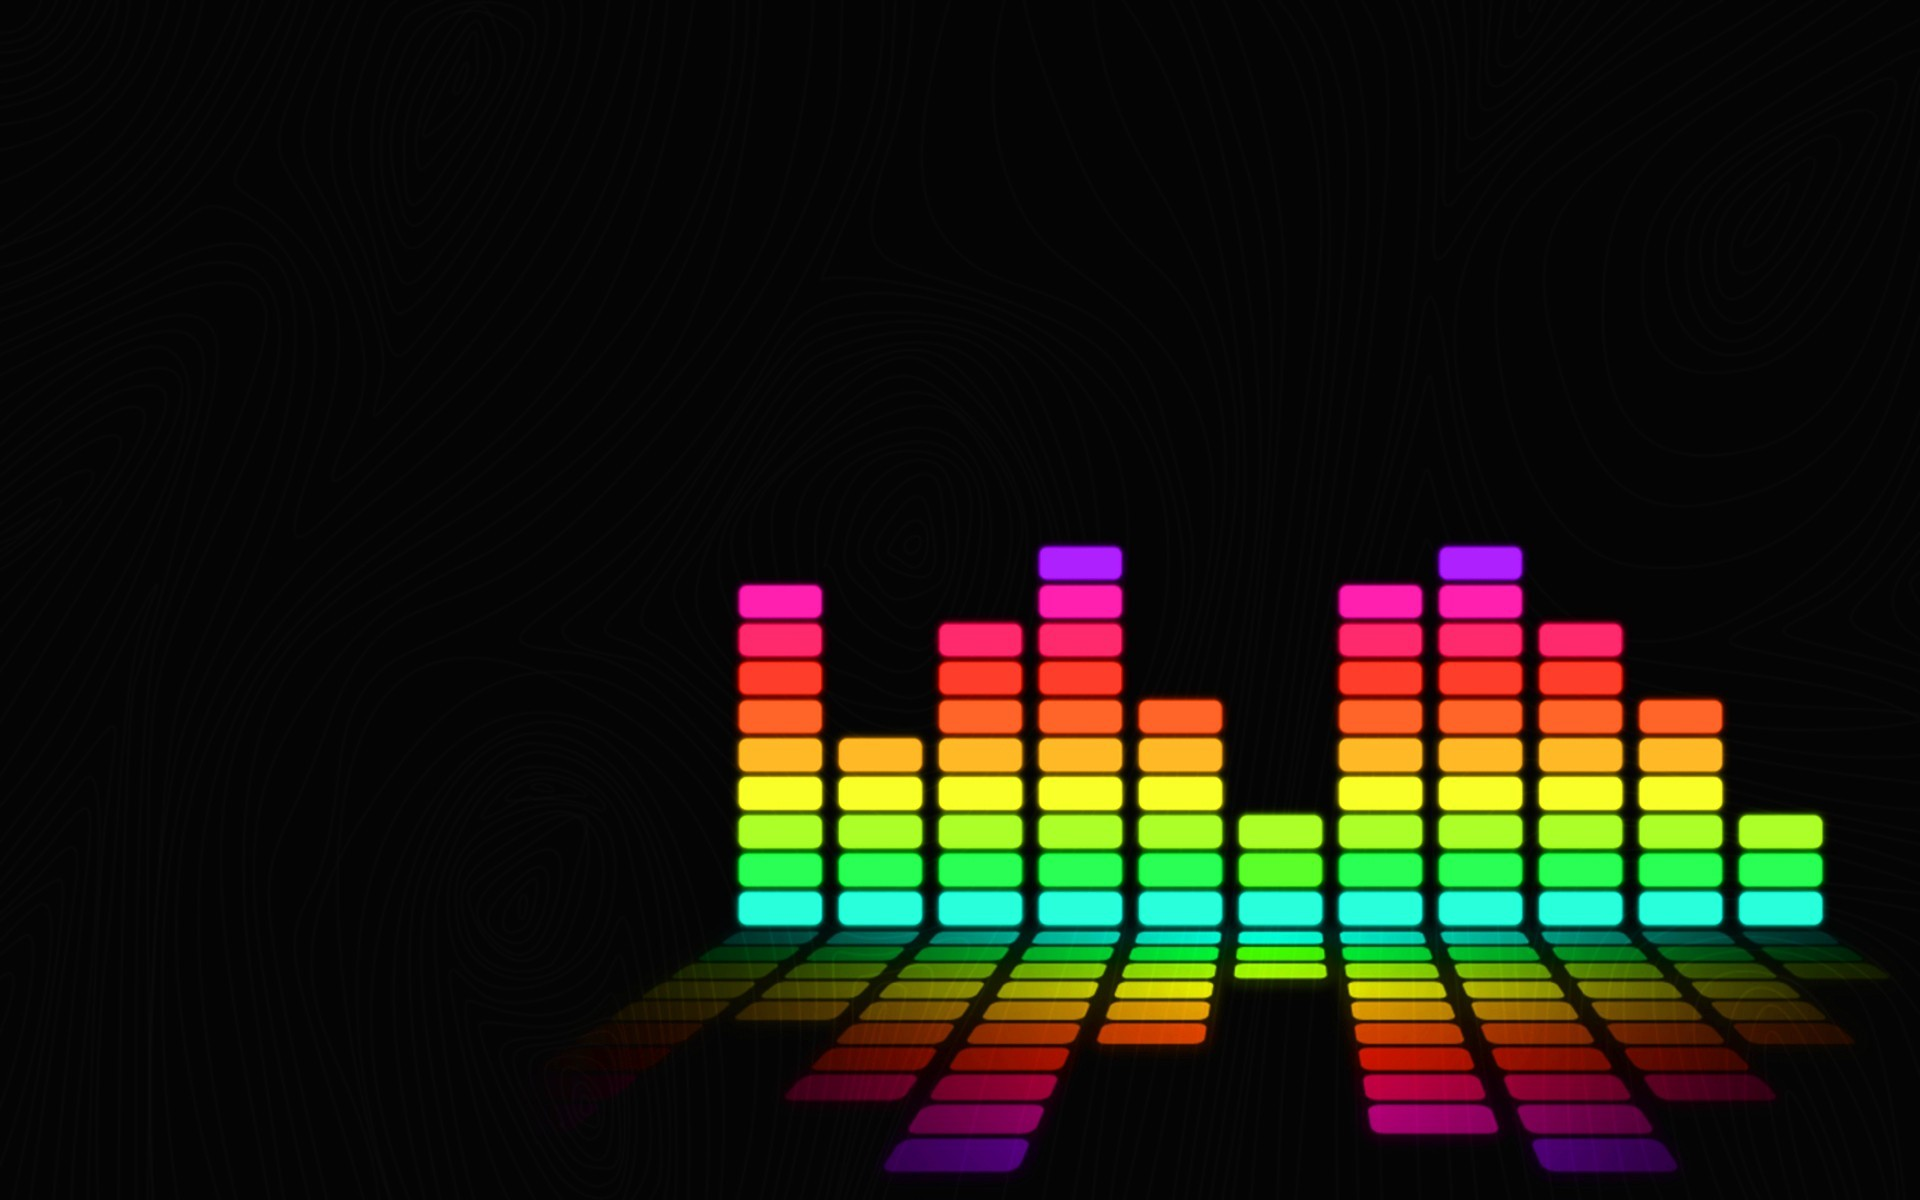 2500x1563 Images Music Wallpapers Instruments